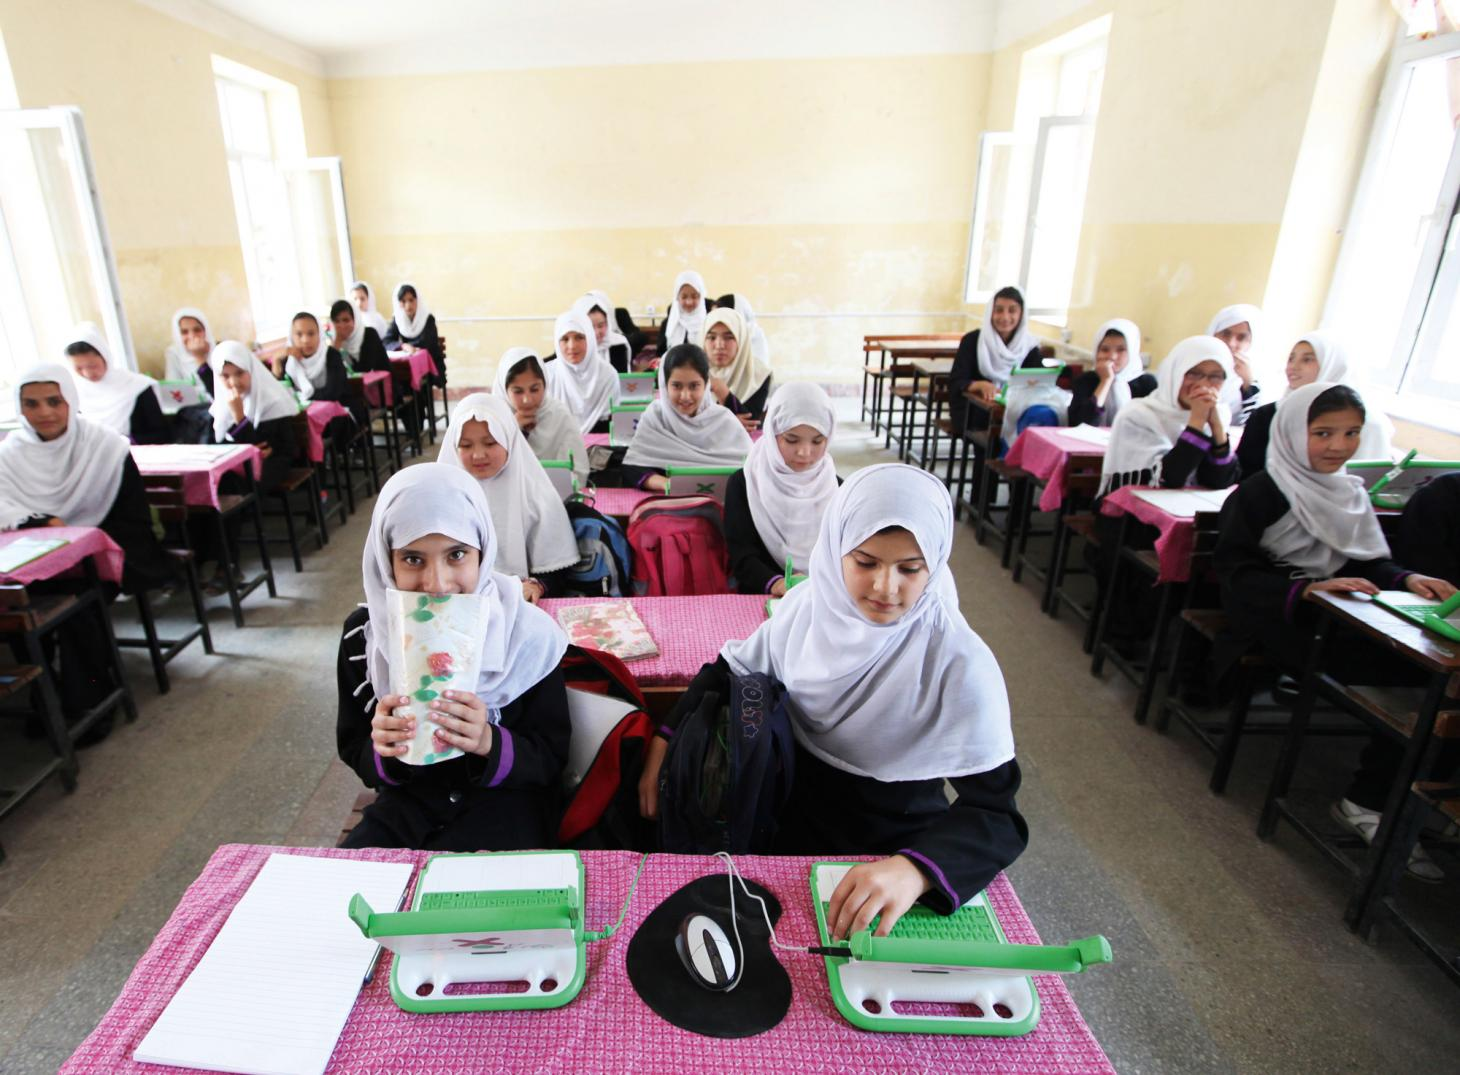 the One Laptop Per Child project used as educational aid in an Afghanistan school